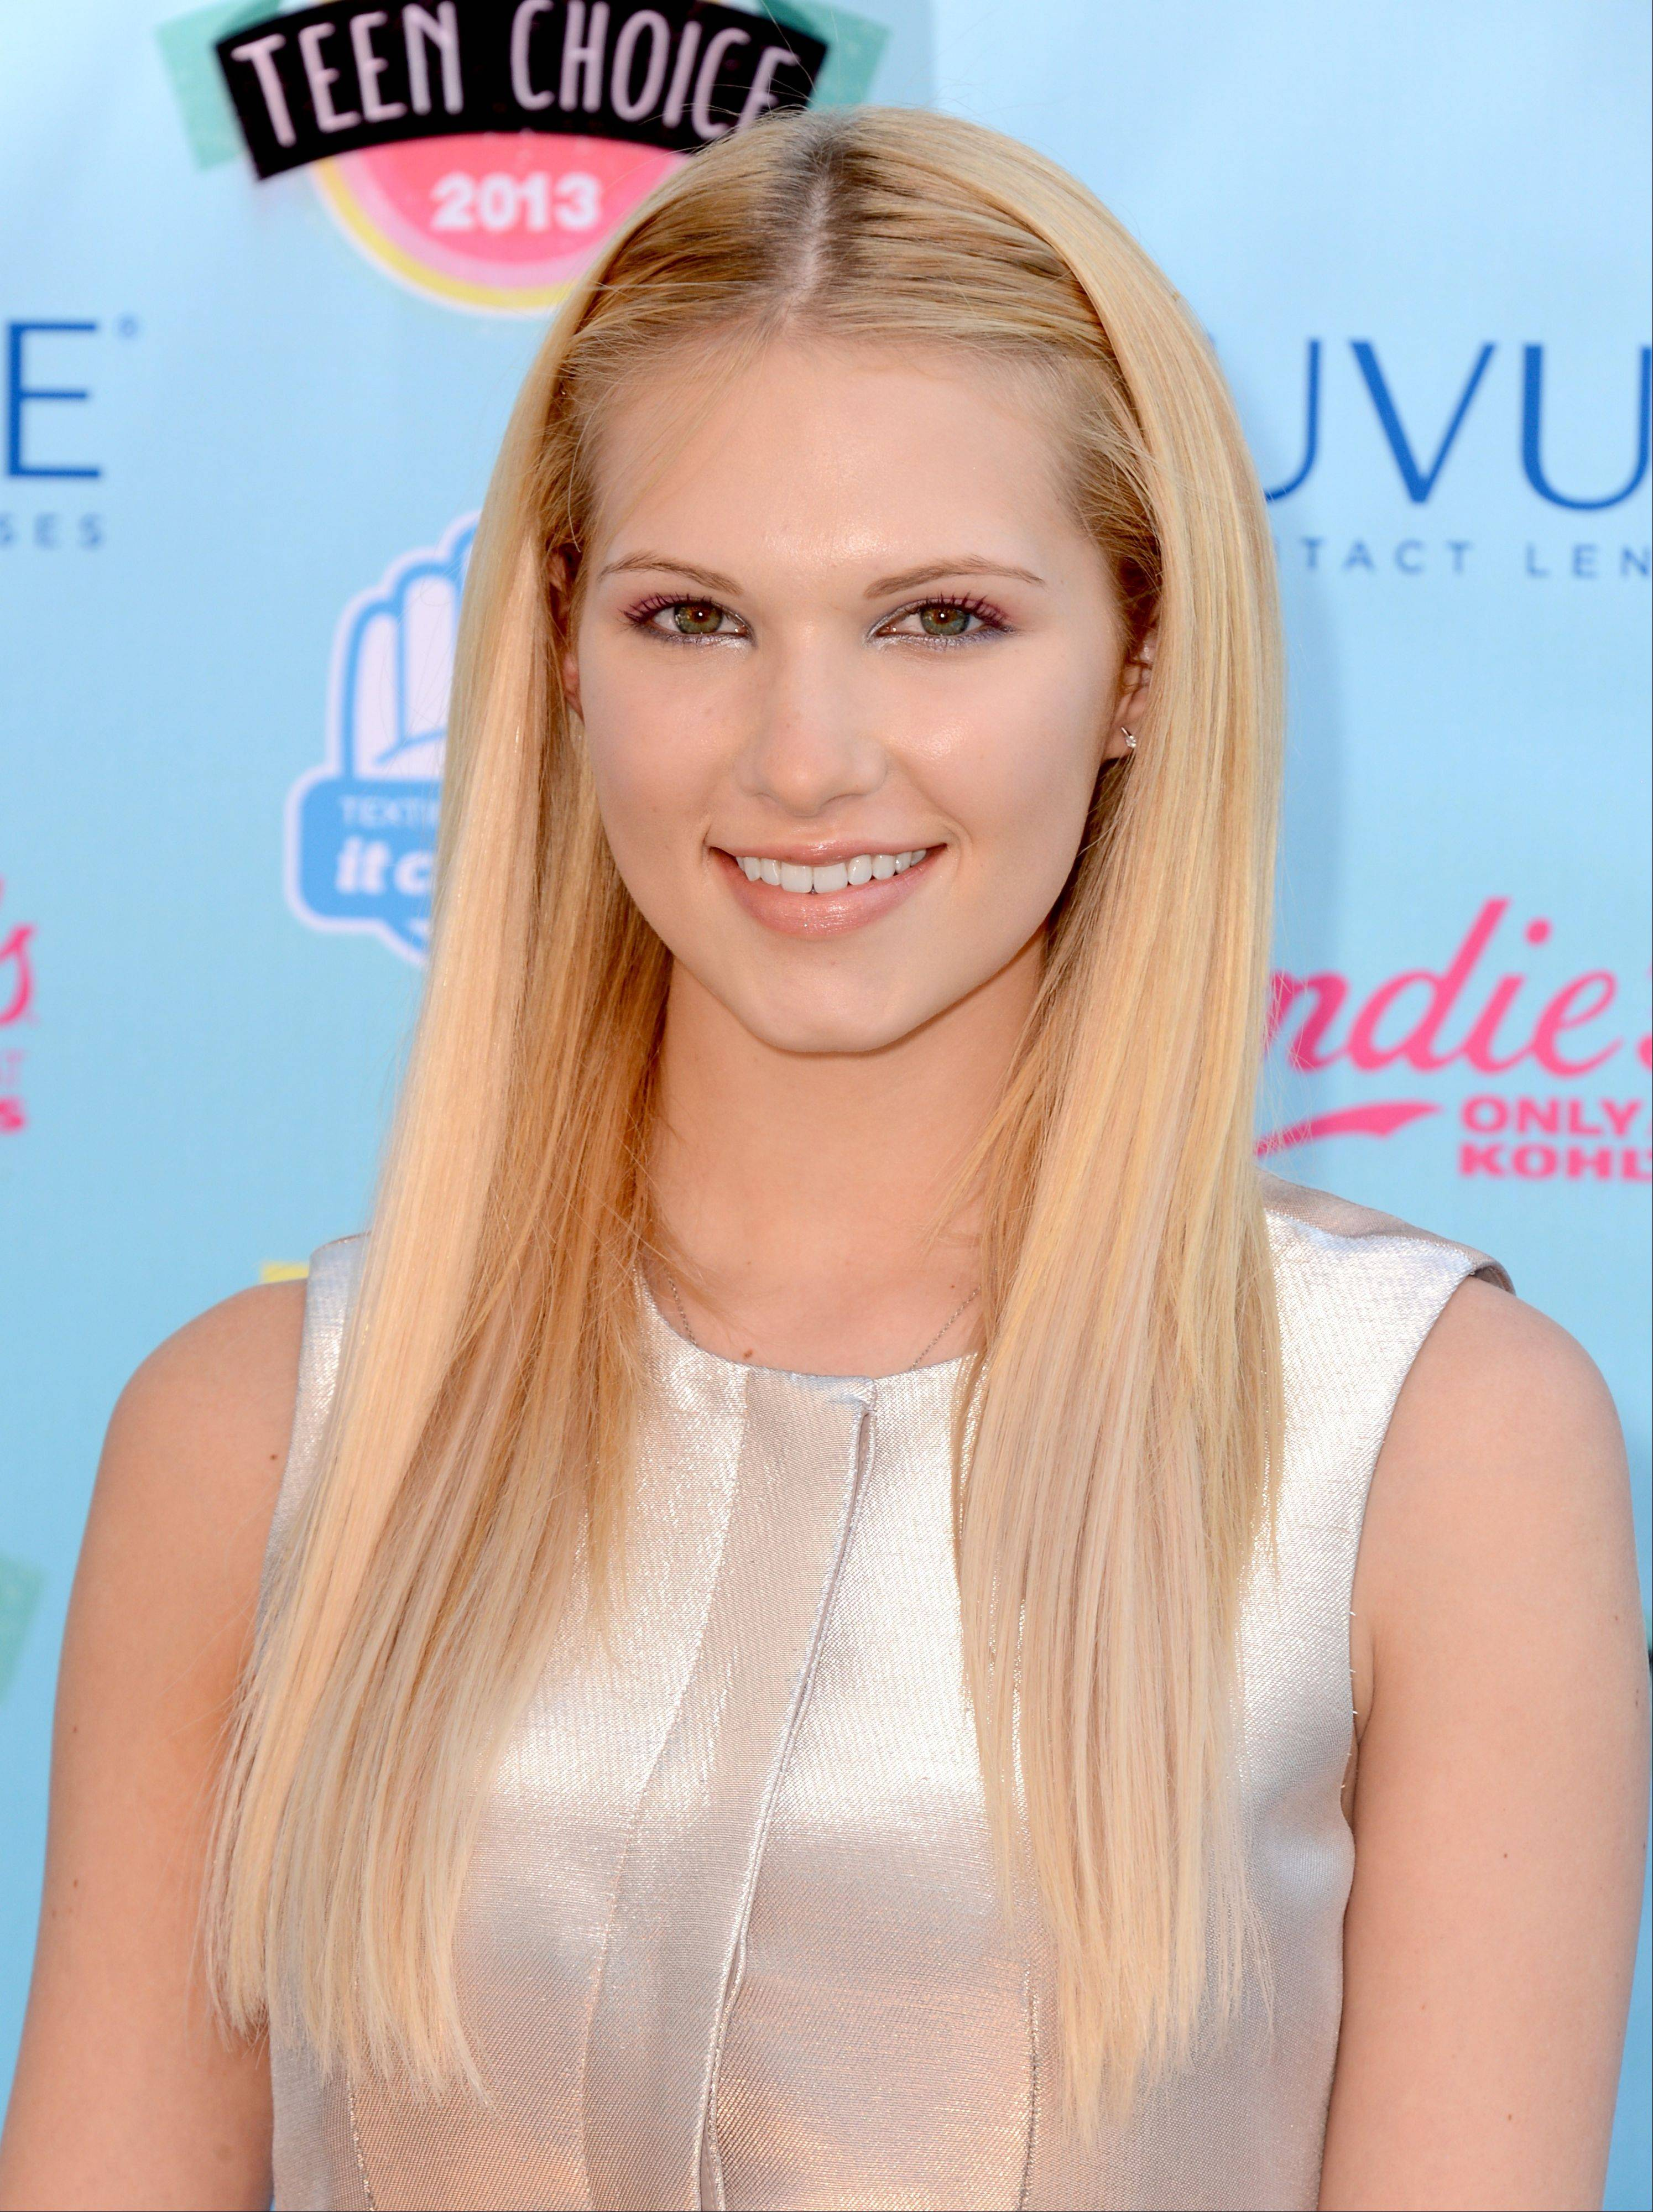 """Hart of Dixie"" star Claudia Lee arrives at the Teen Choice Awards on Sunday."